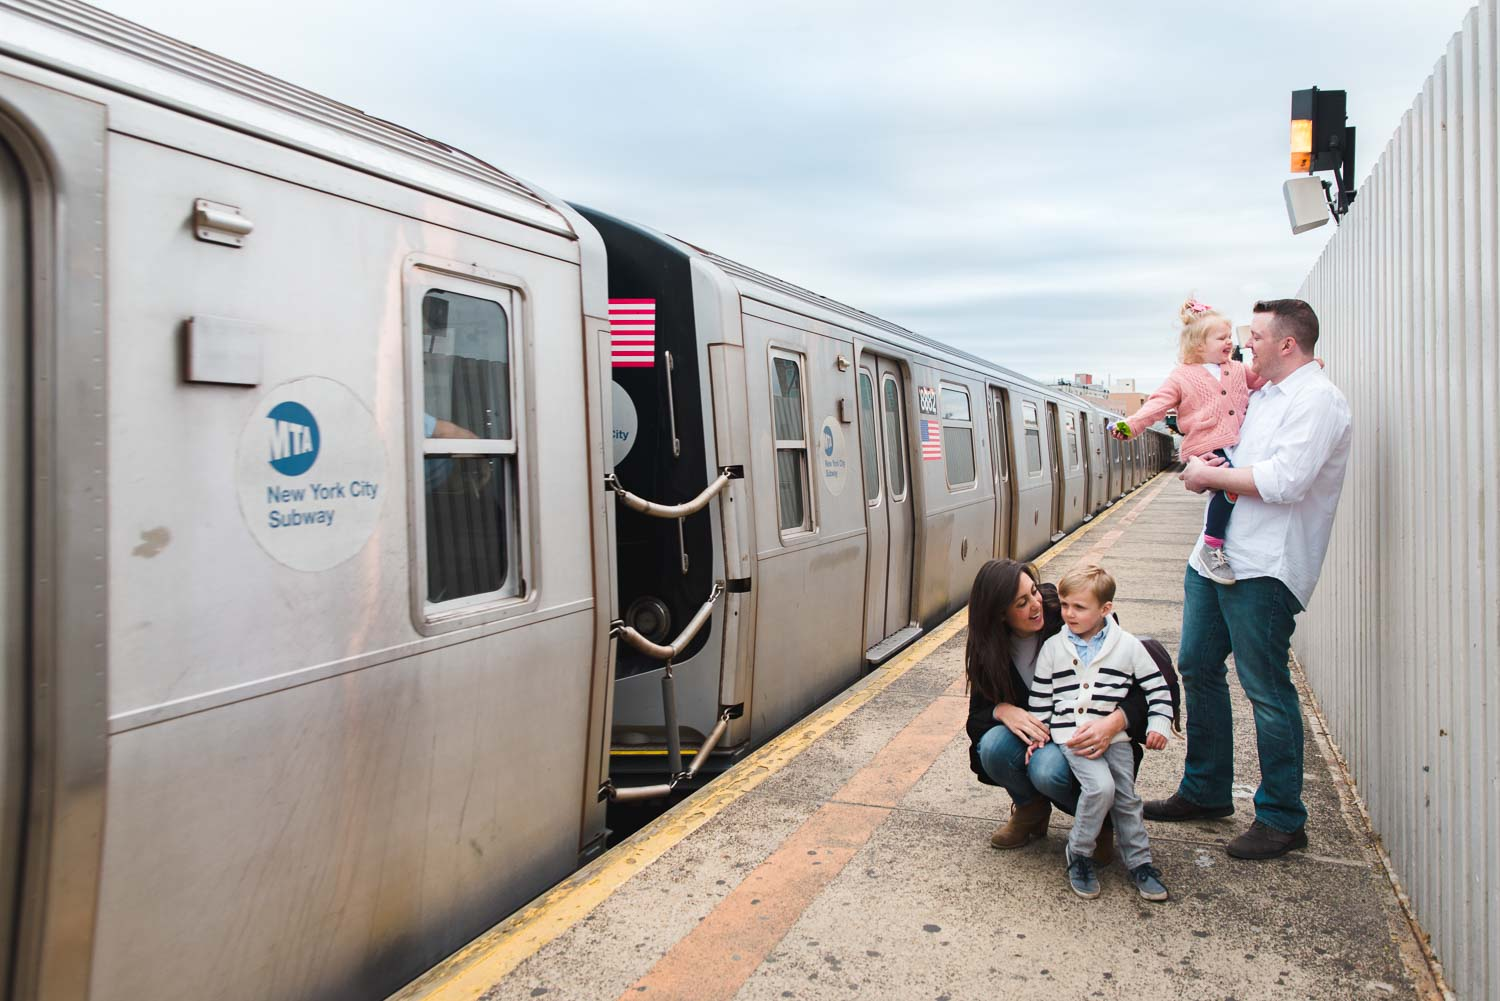 A family waits for the subway in Queens.